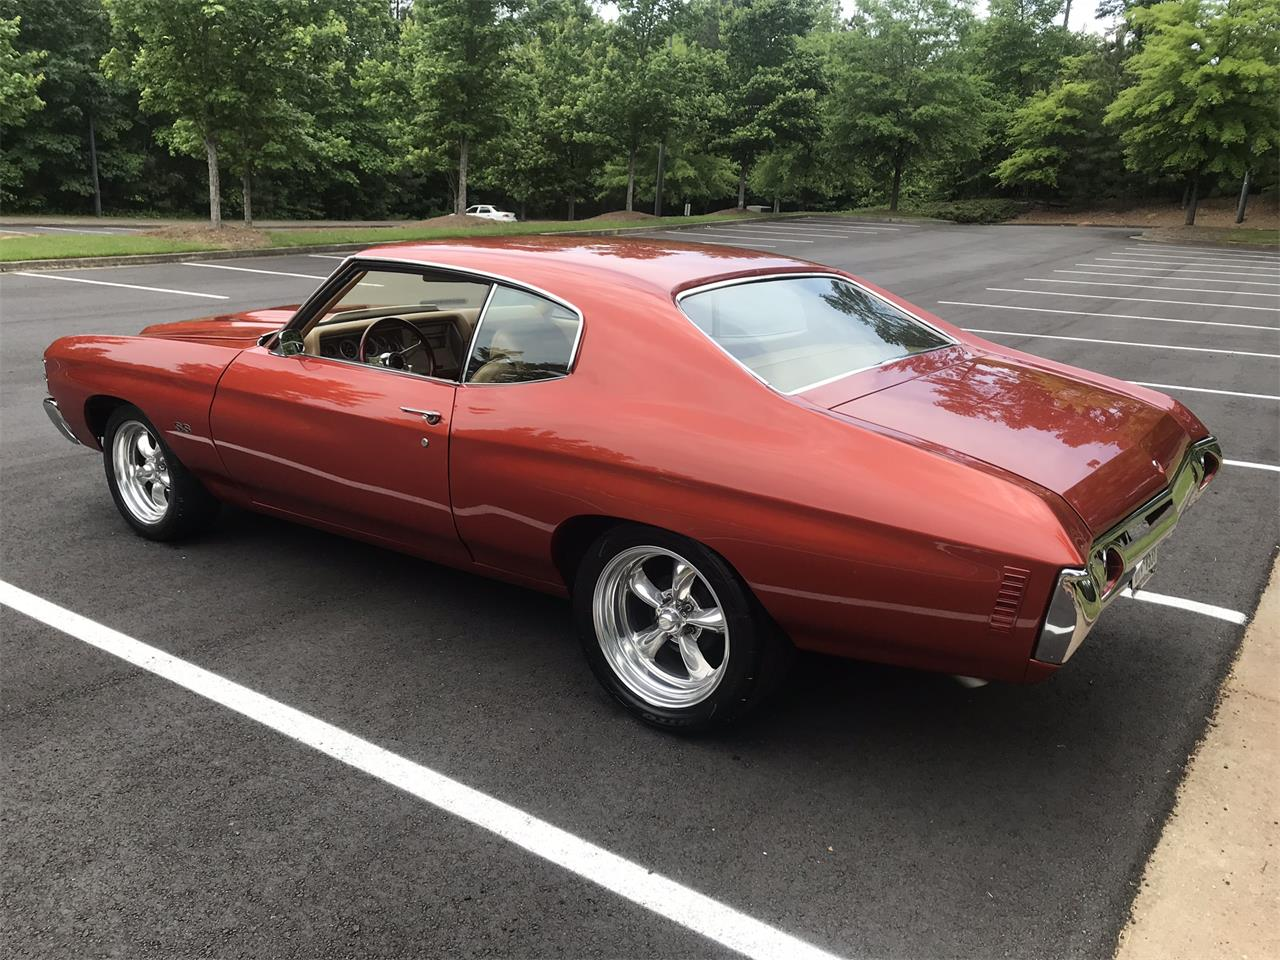 1971 Chevrolet Chevelle SS (CC-1214275) for sale in Norcross, Georgia